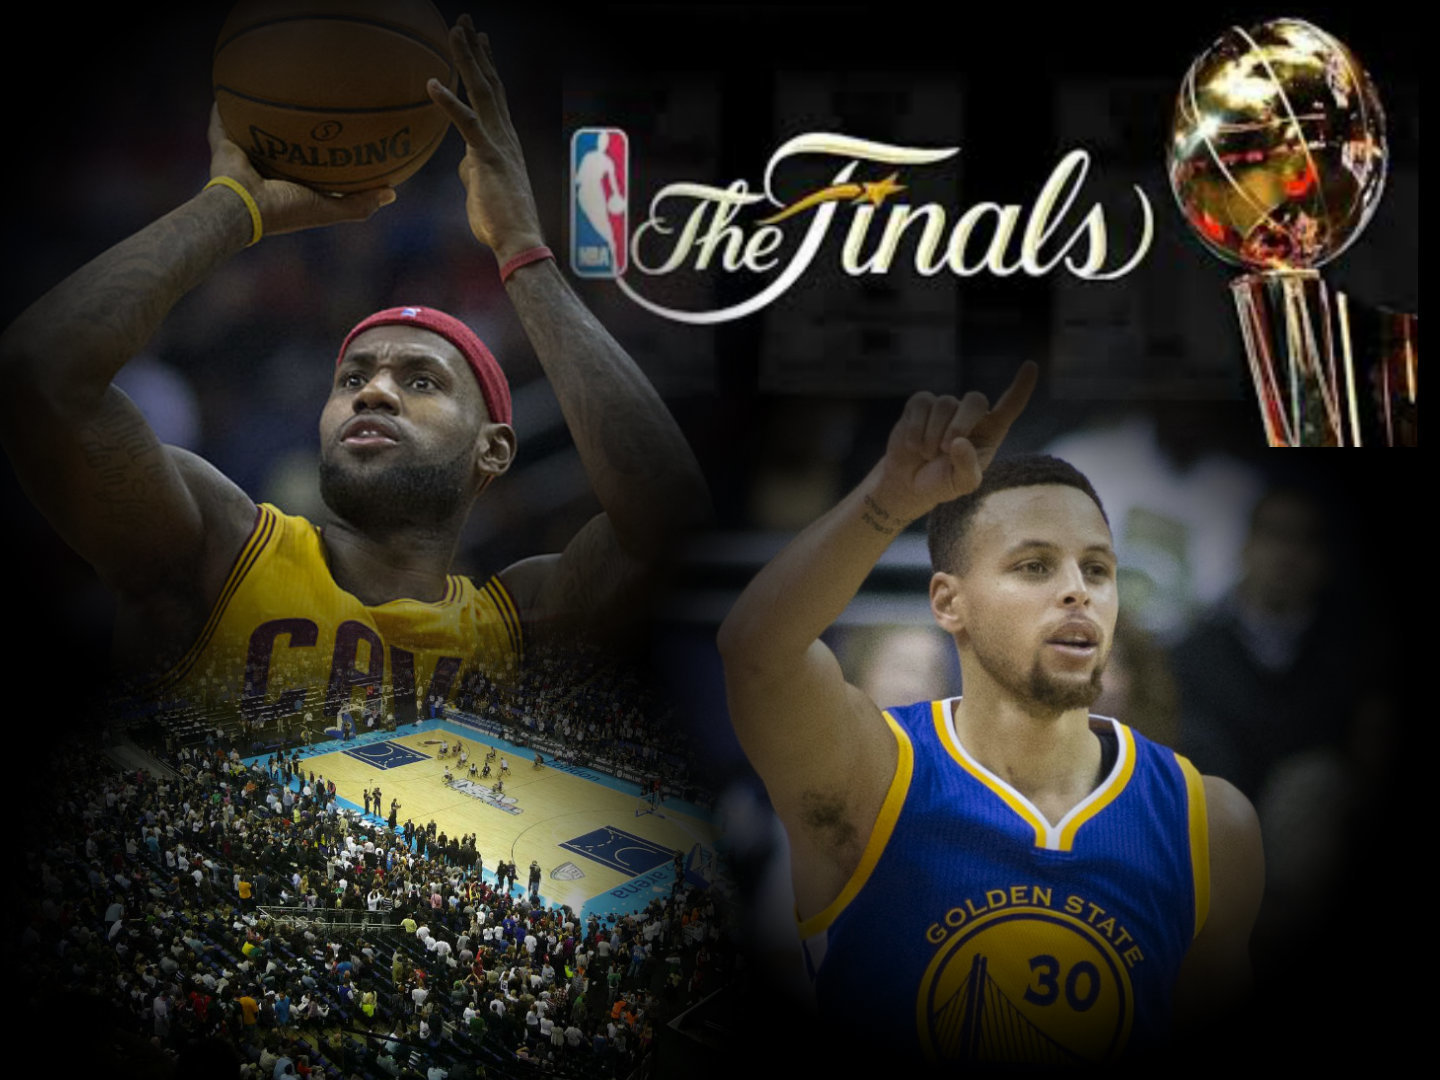 The NBA Finals may not see the third straight year of the Golden State Warriors against the Cleveland Cavaliers. (credit: Charles Hallman via Minnesota Spokesman-Recorder)